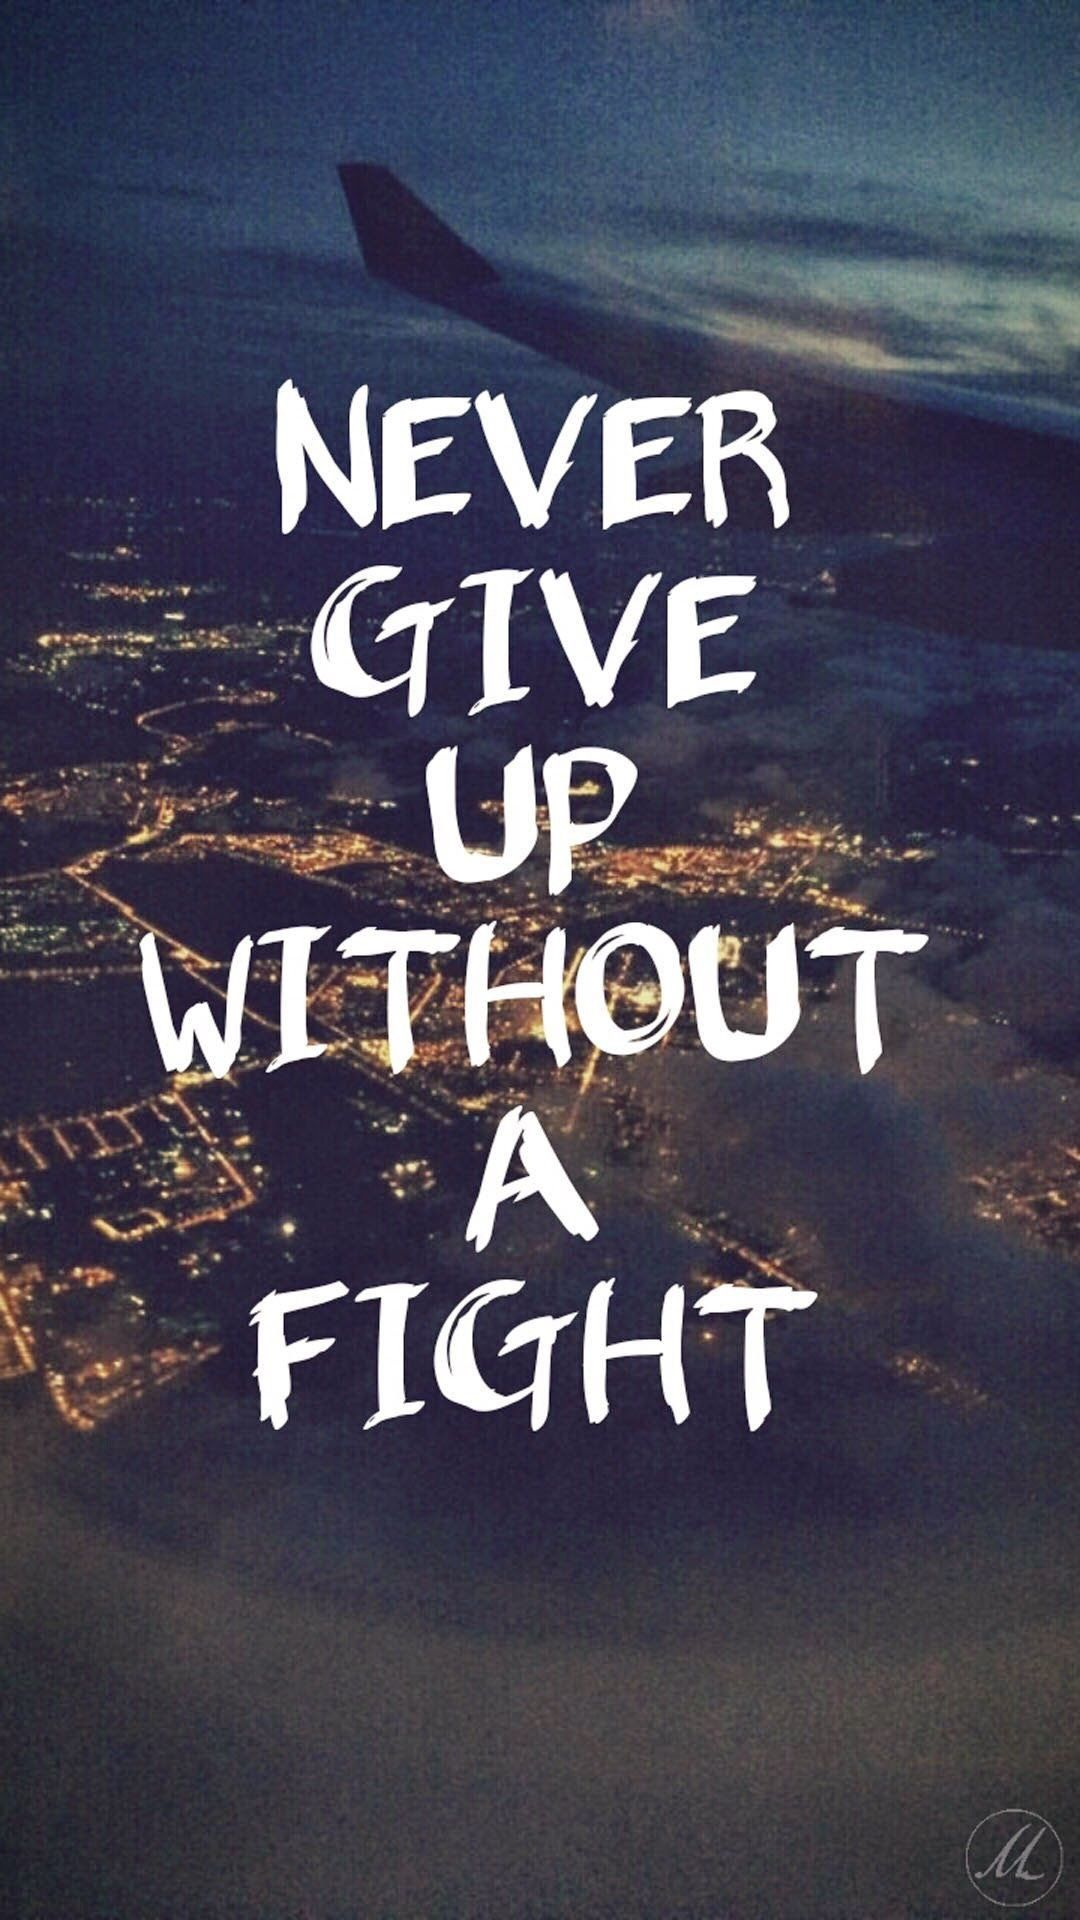 Motivational Quotes iPhone Wallpapers on WallpaperDog